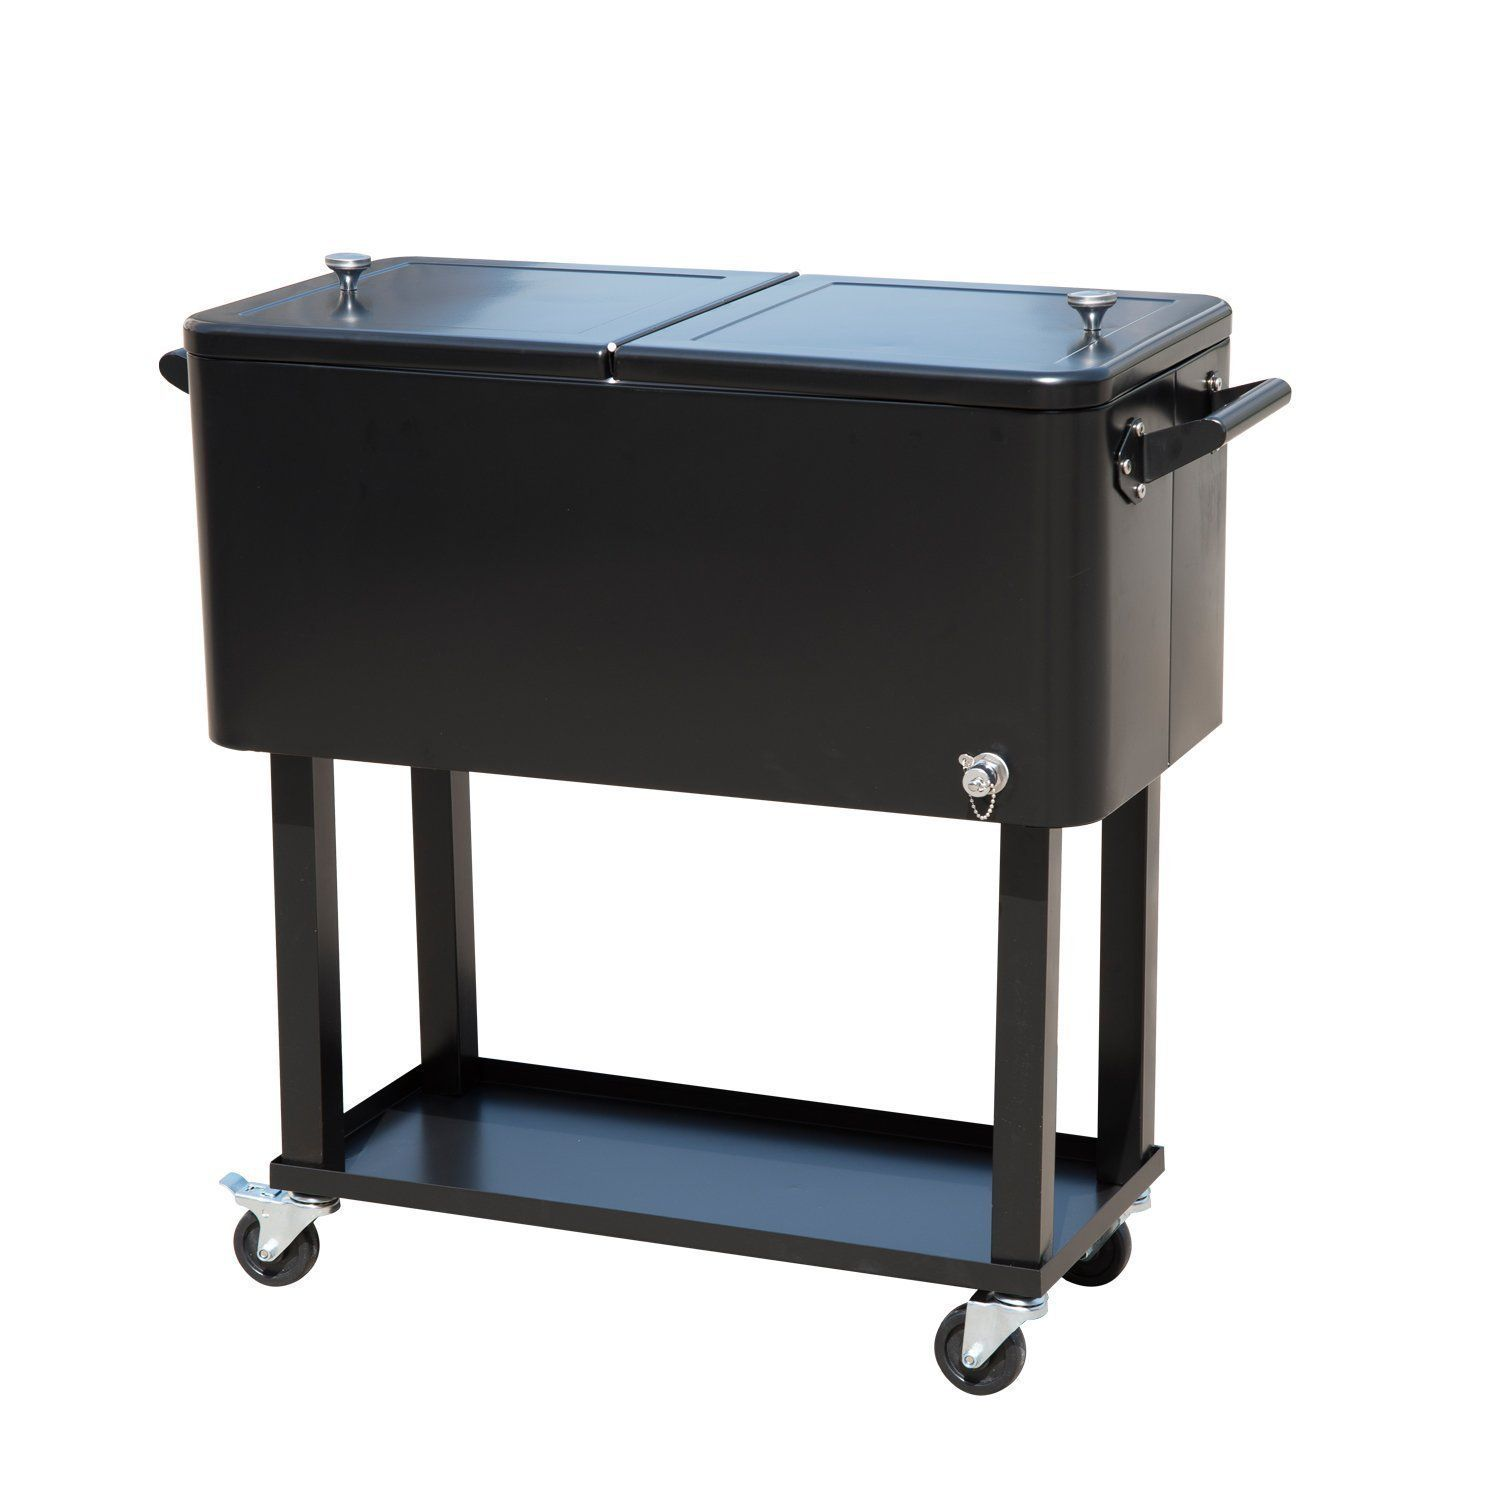 Amazon.com : Tenive 80 Quart Rolling Wheels Ice Chest Portable Patio Party  Bar